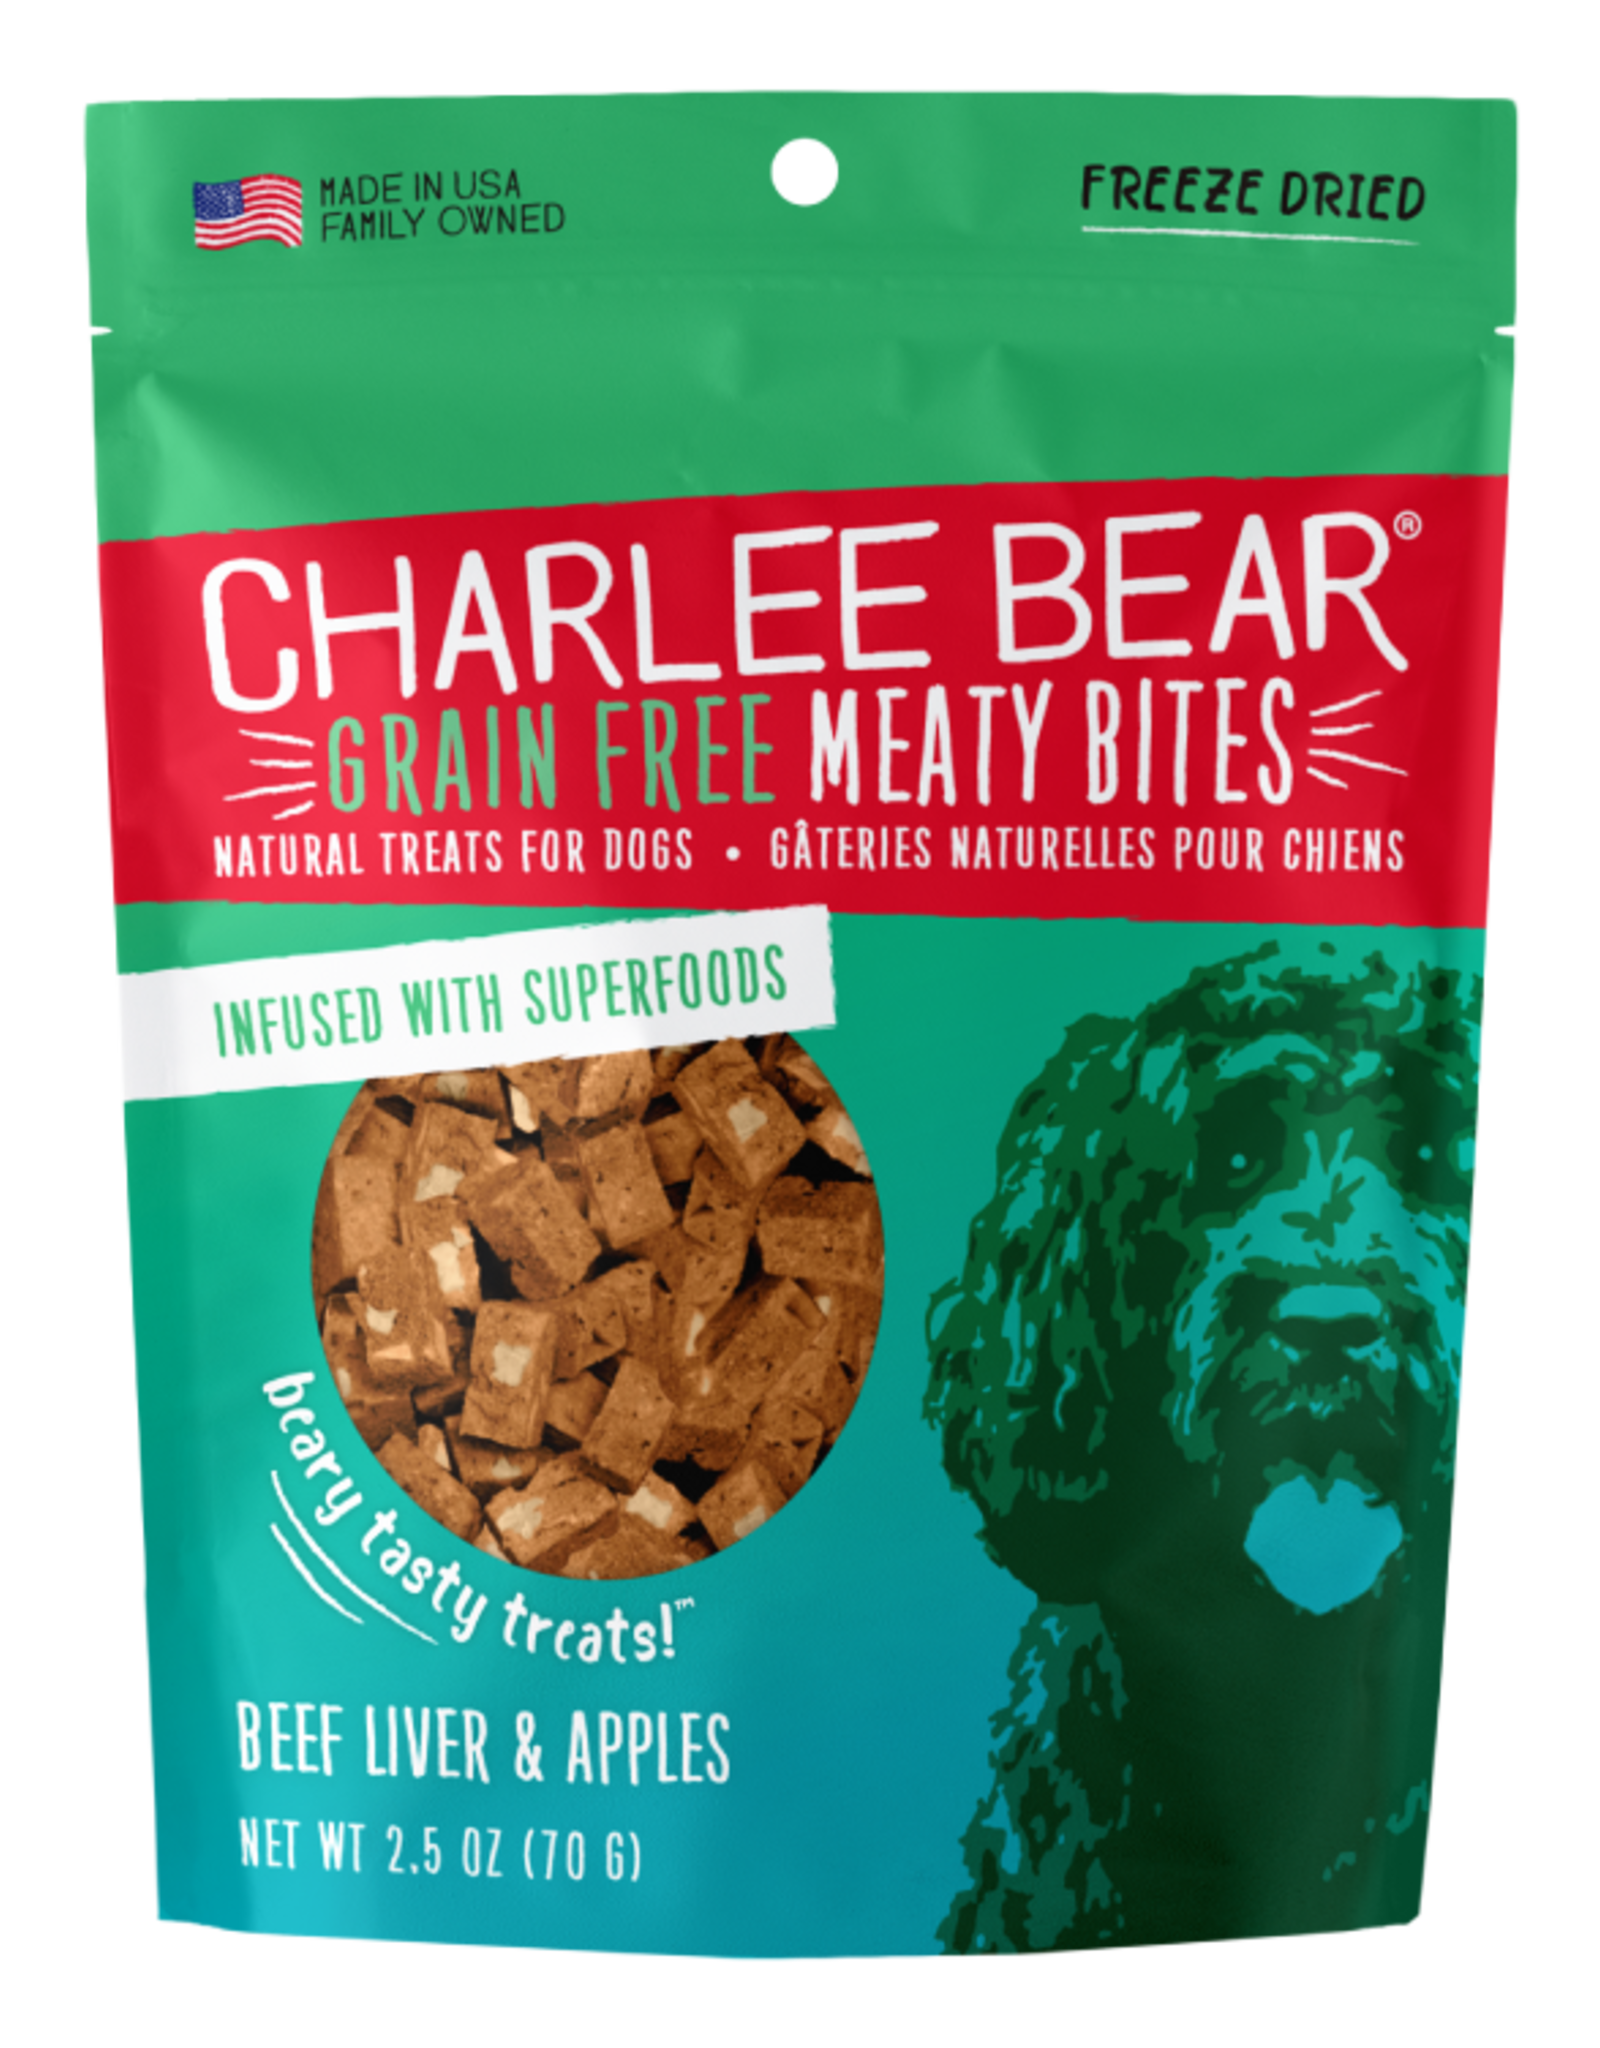 Charlee Bear Meaty Bites Beef Liver & Apples